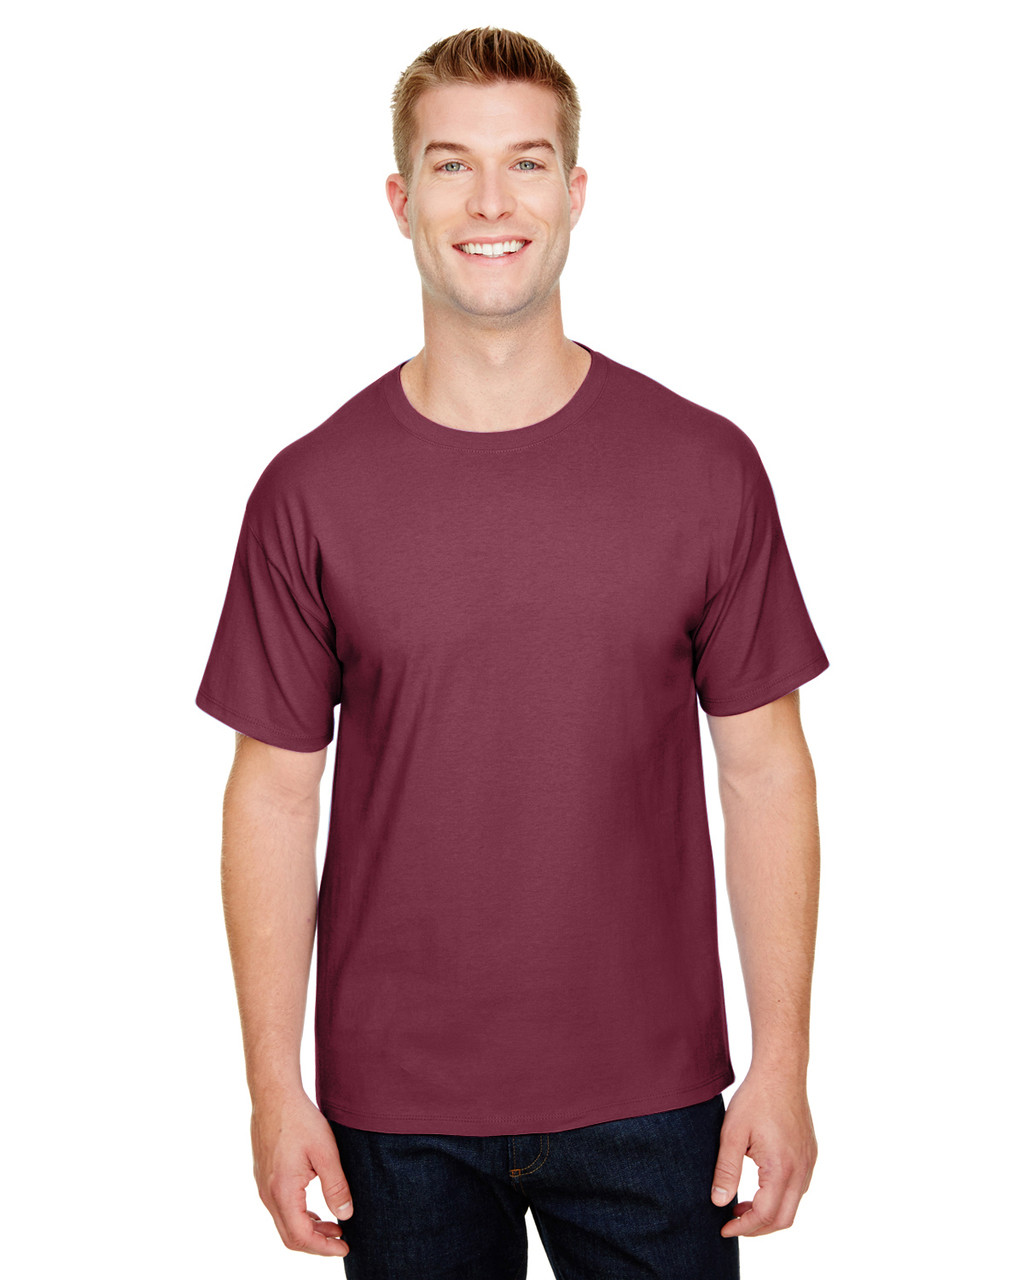 Maroon - CP10 Champion Adult Ringspun Cotton T-Shirt | BlankClothing.ca